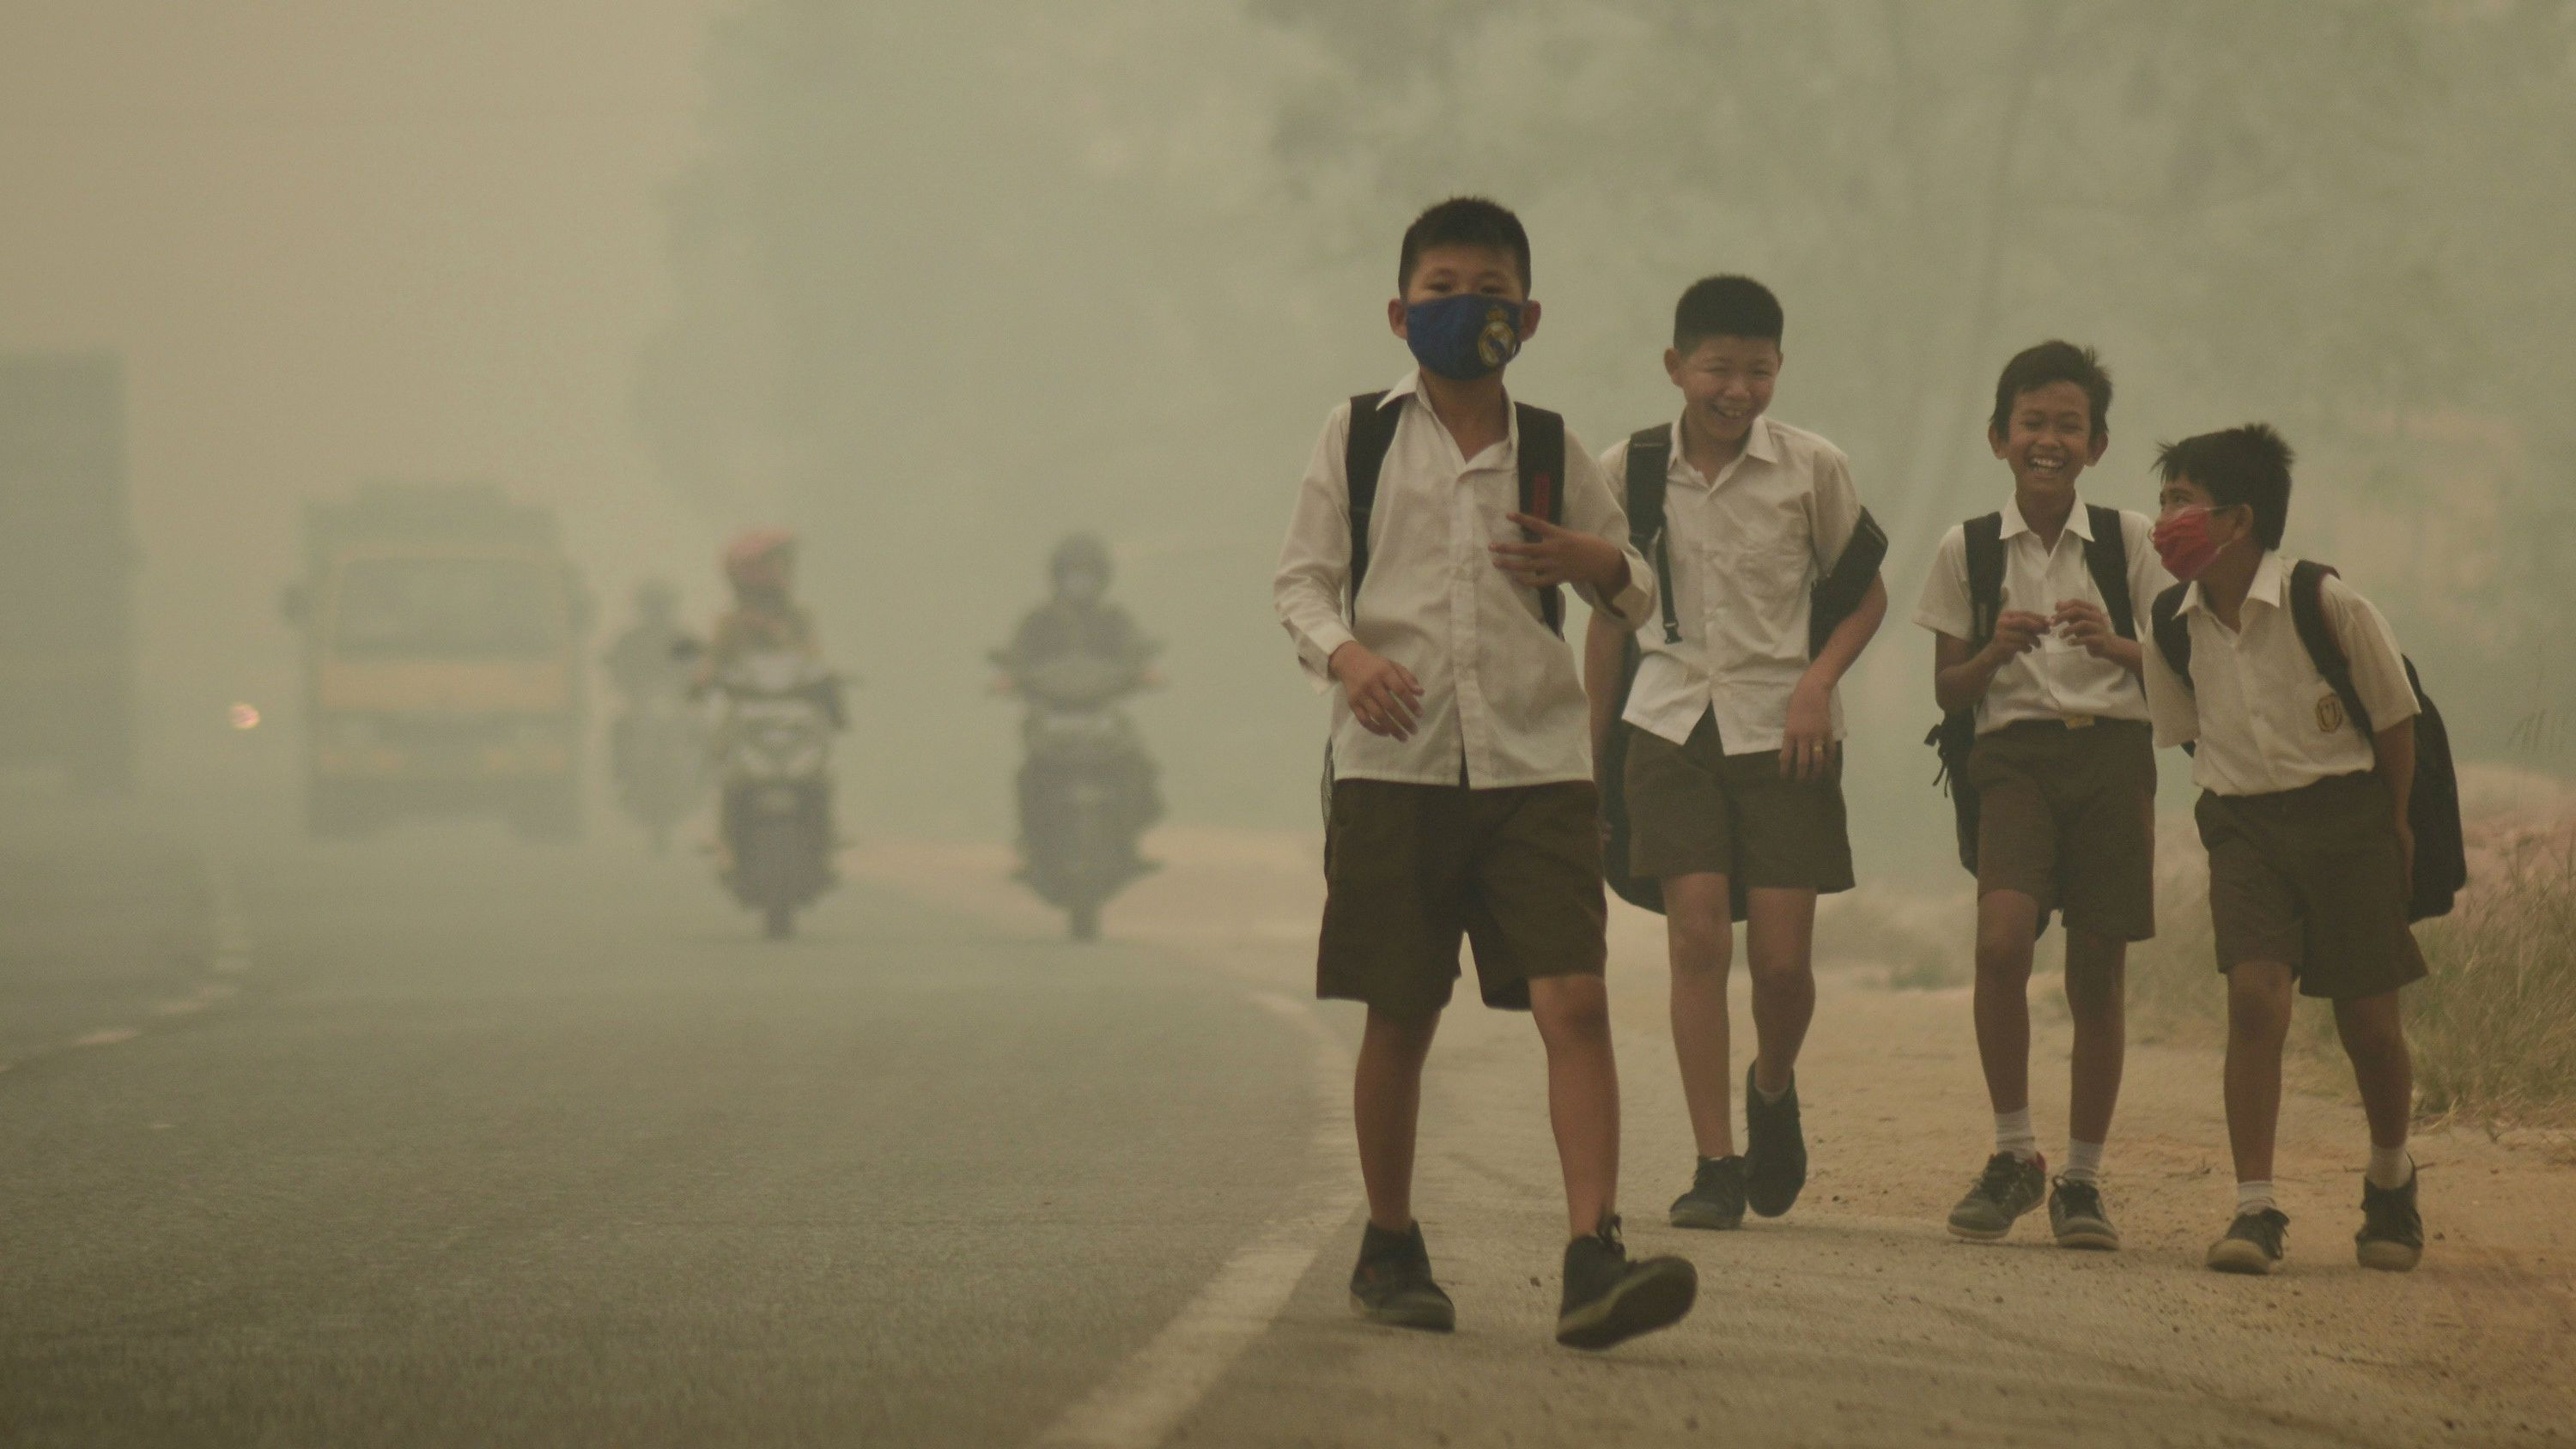 WHO: 9 out of 10 people breathe toxic air worldwide